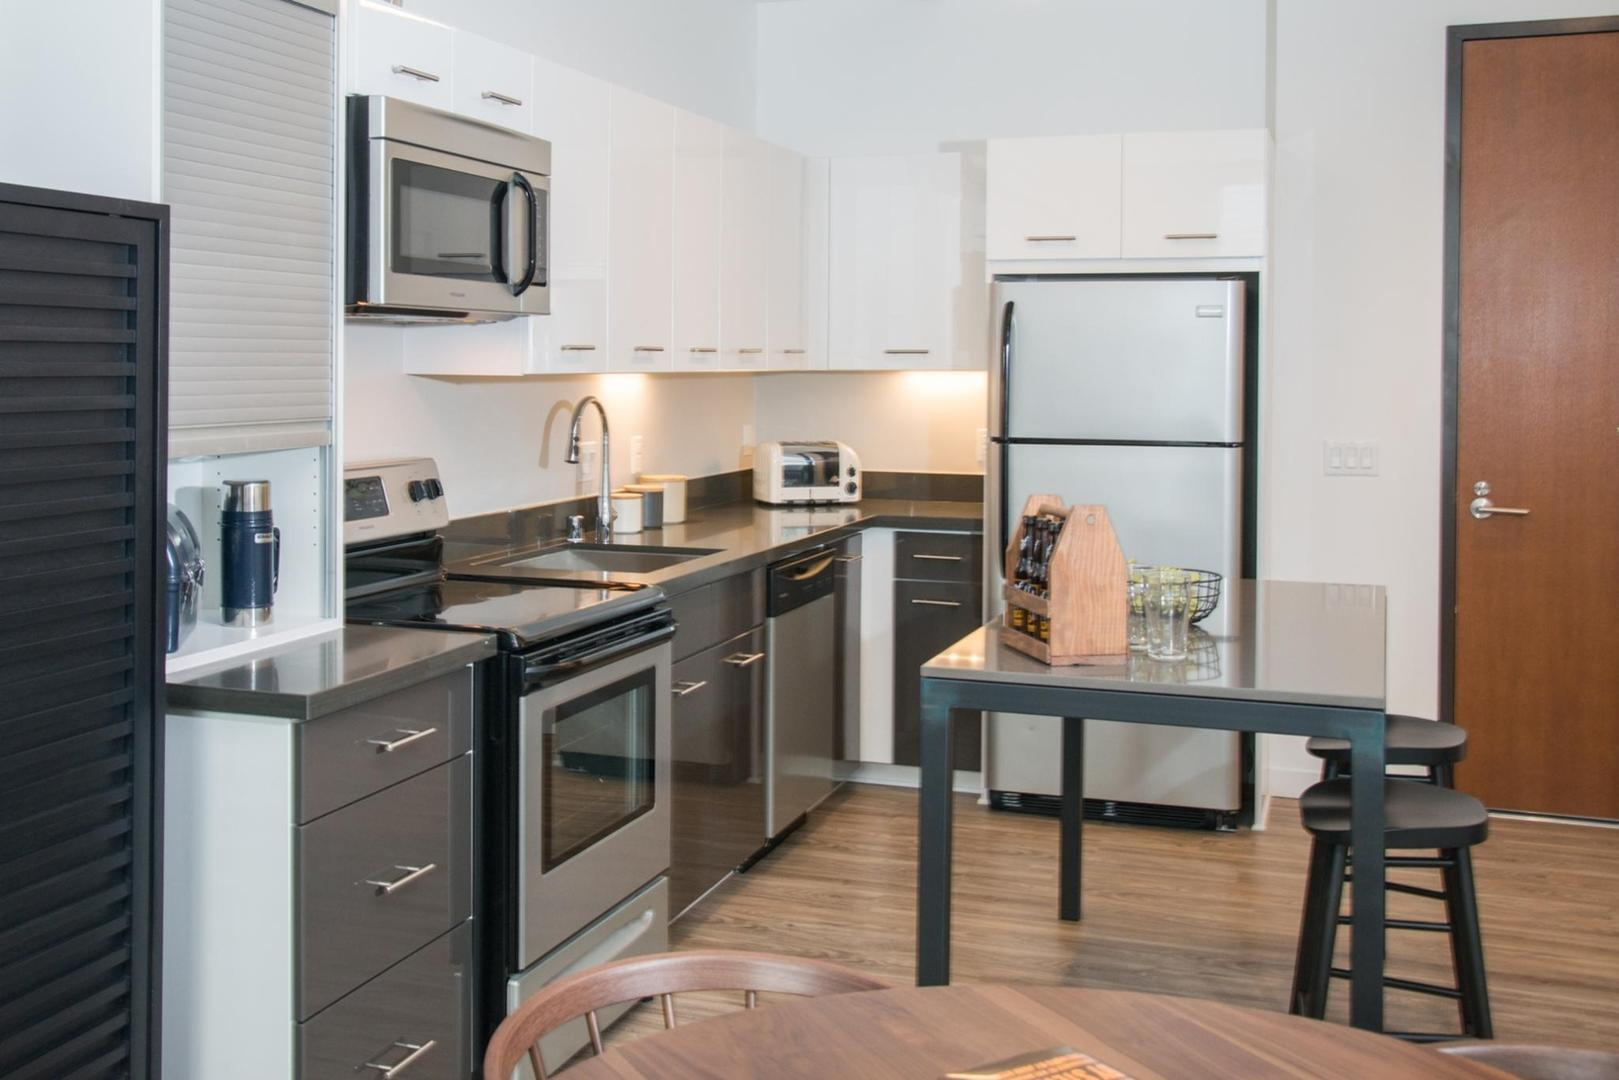 688 13th St #115 - 2345USD / month